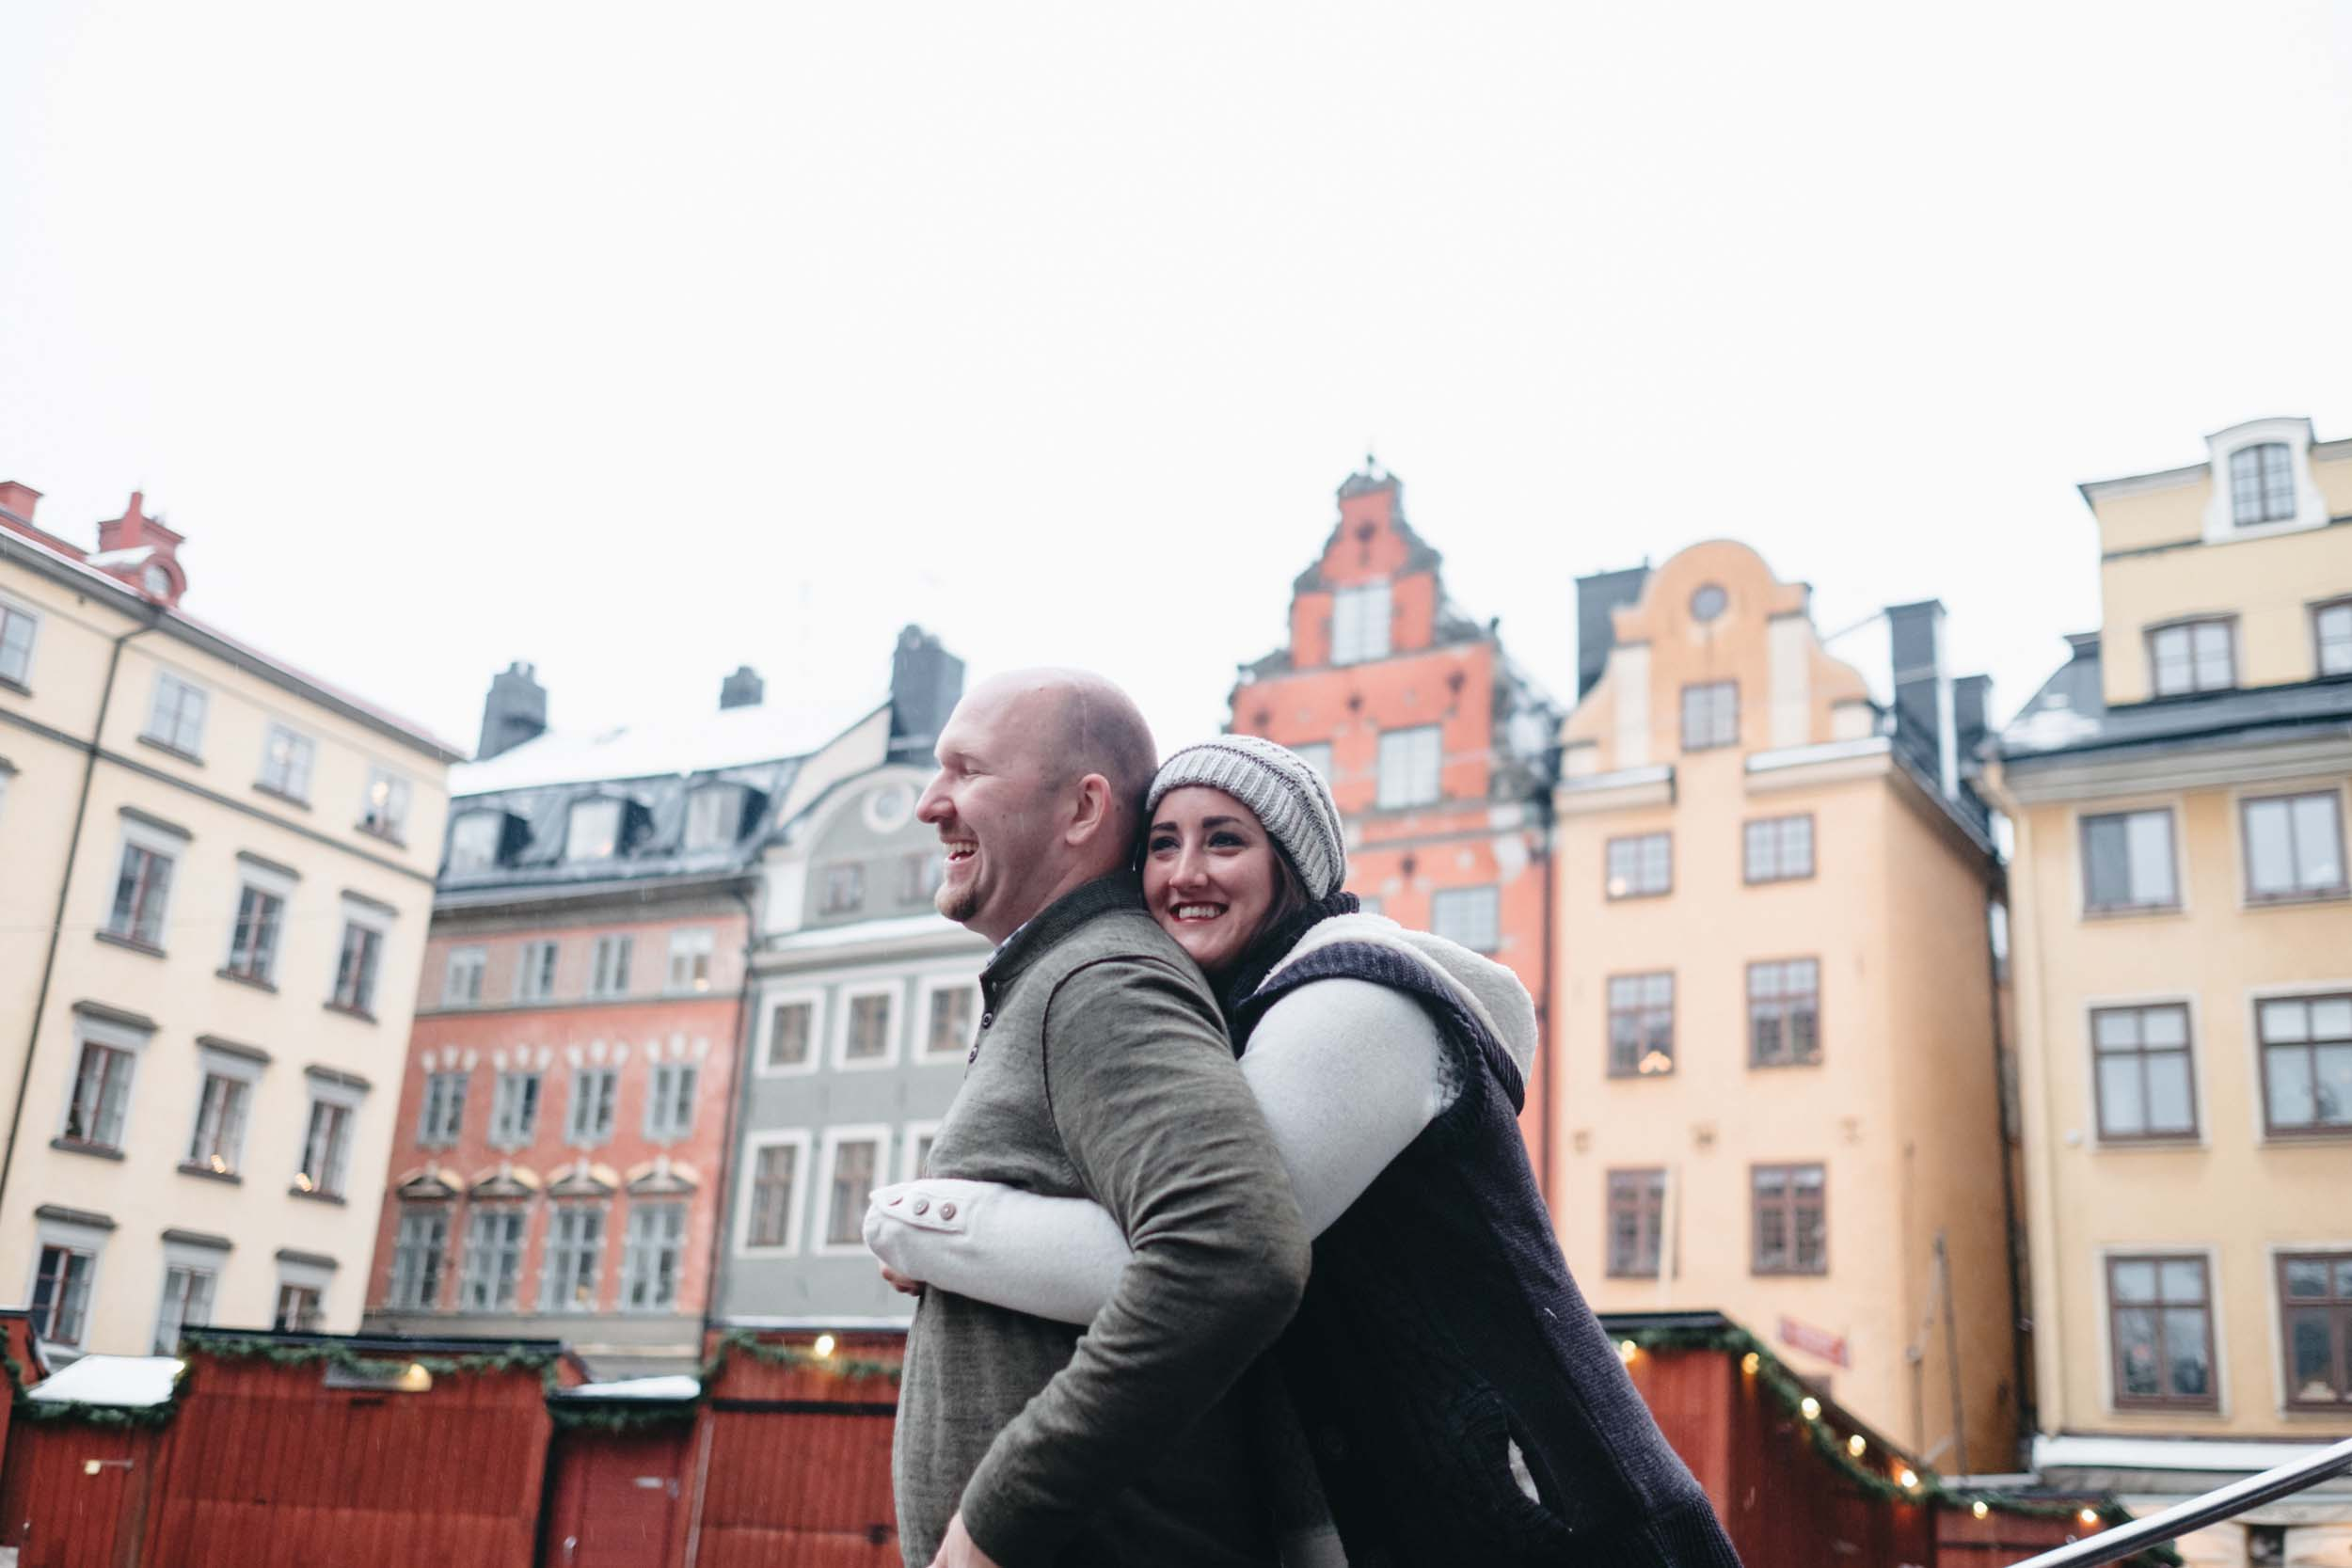 Woman hugging her partner and they are both smiling in Stockholm, Sweden